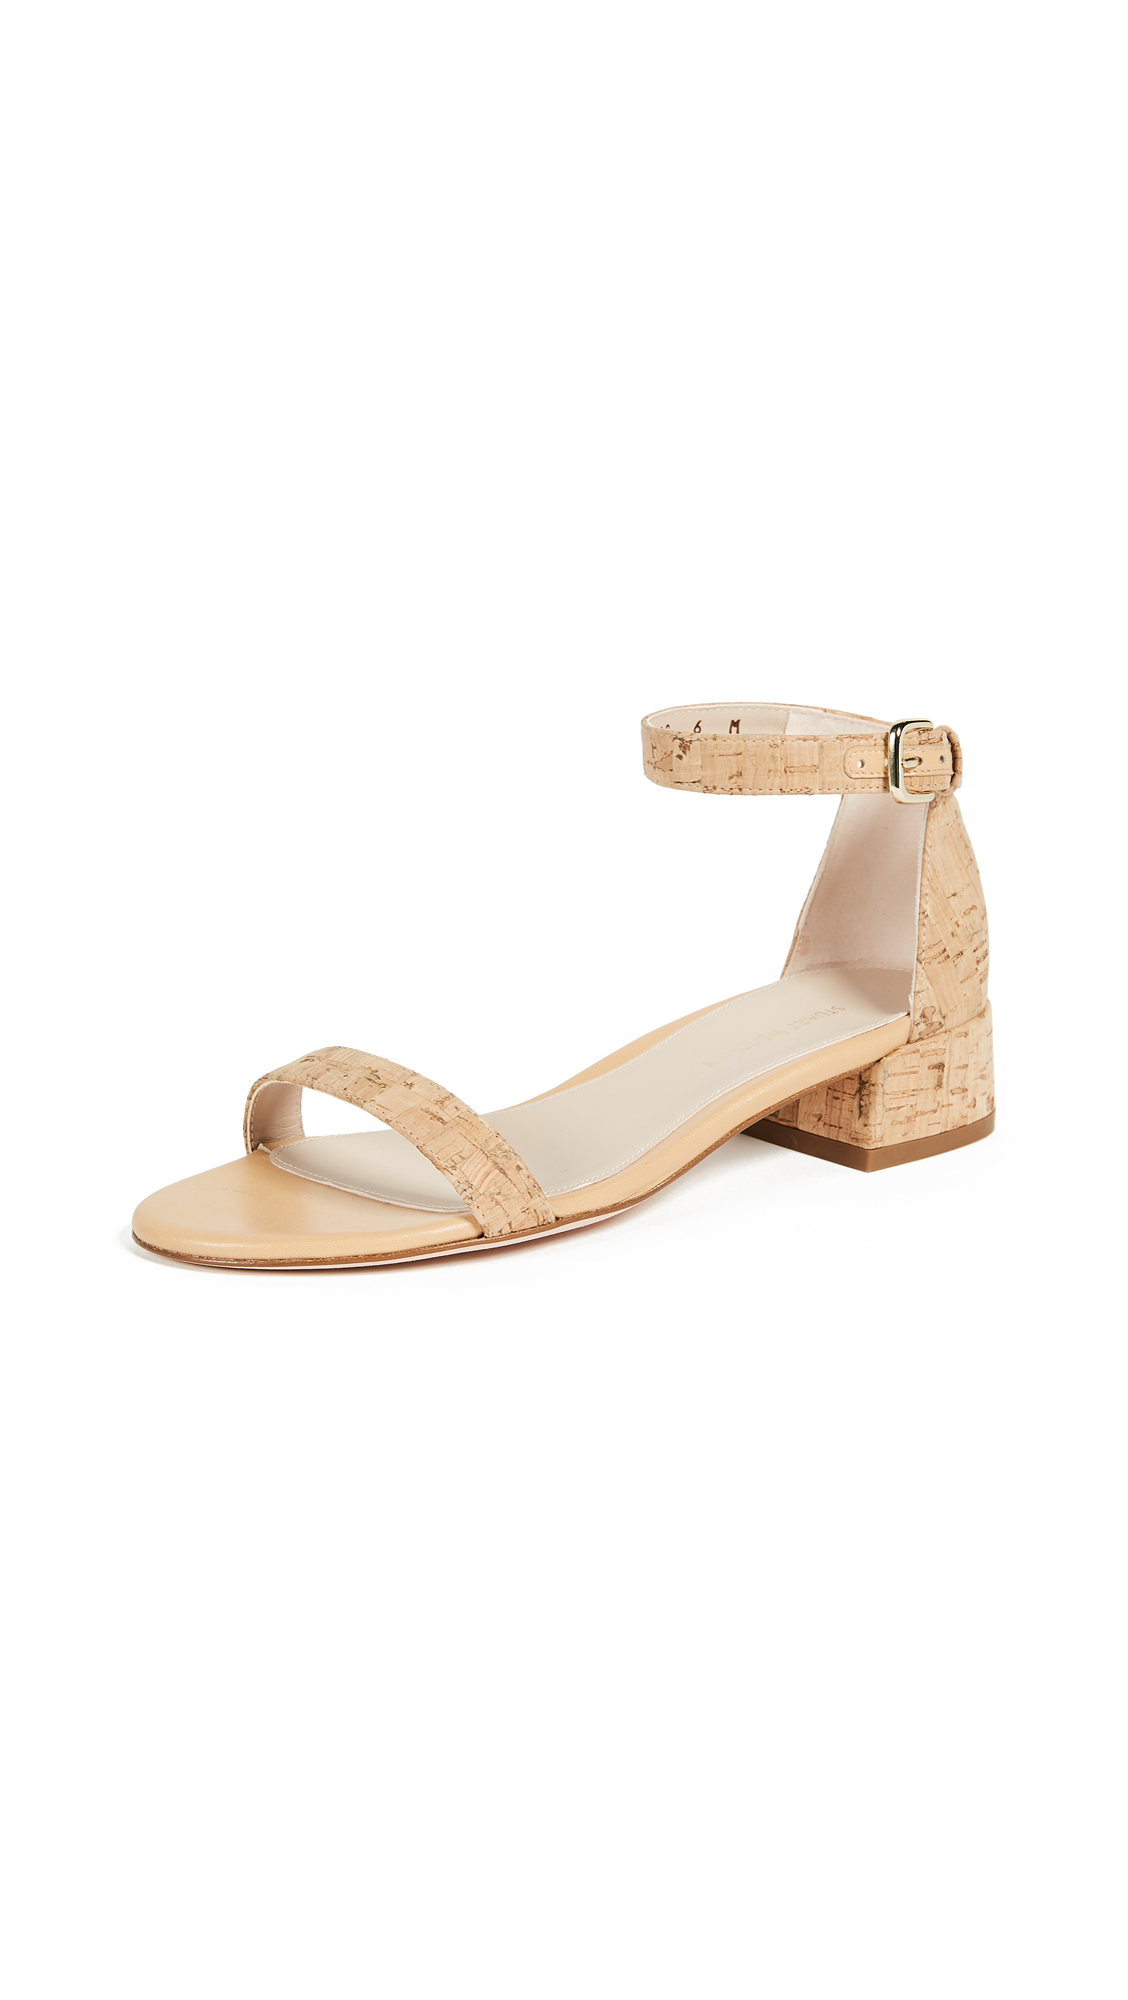 Stuart Weitzman Nudist June City Sandals - Natural